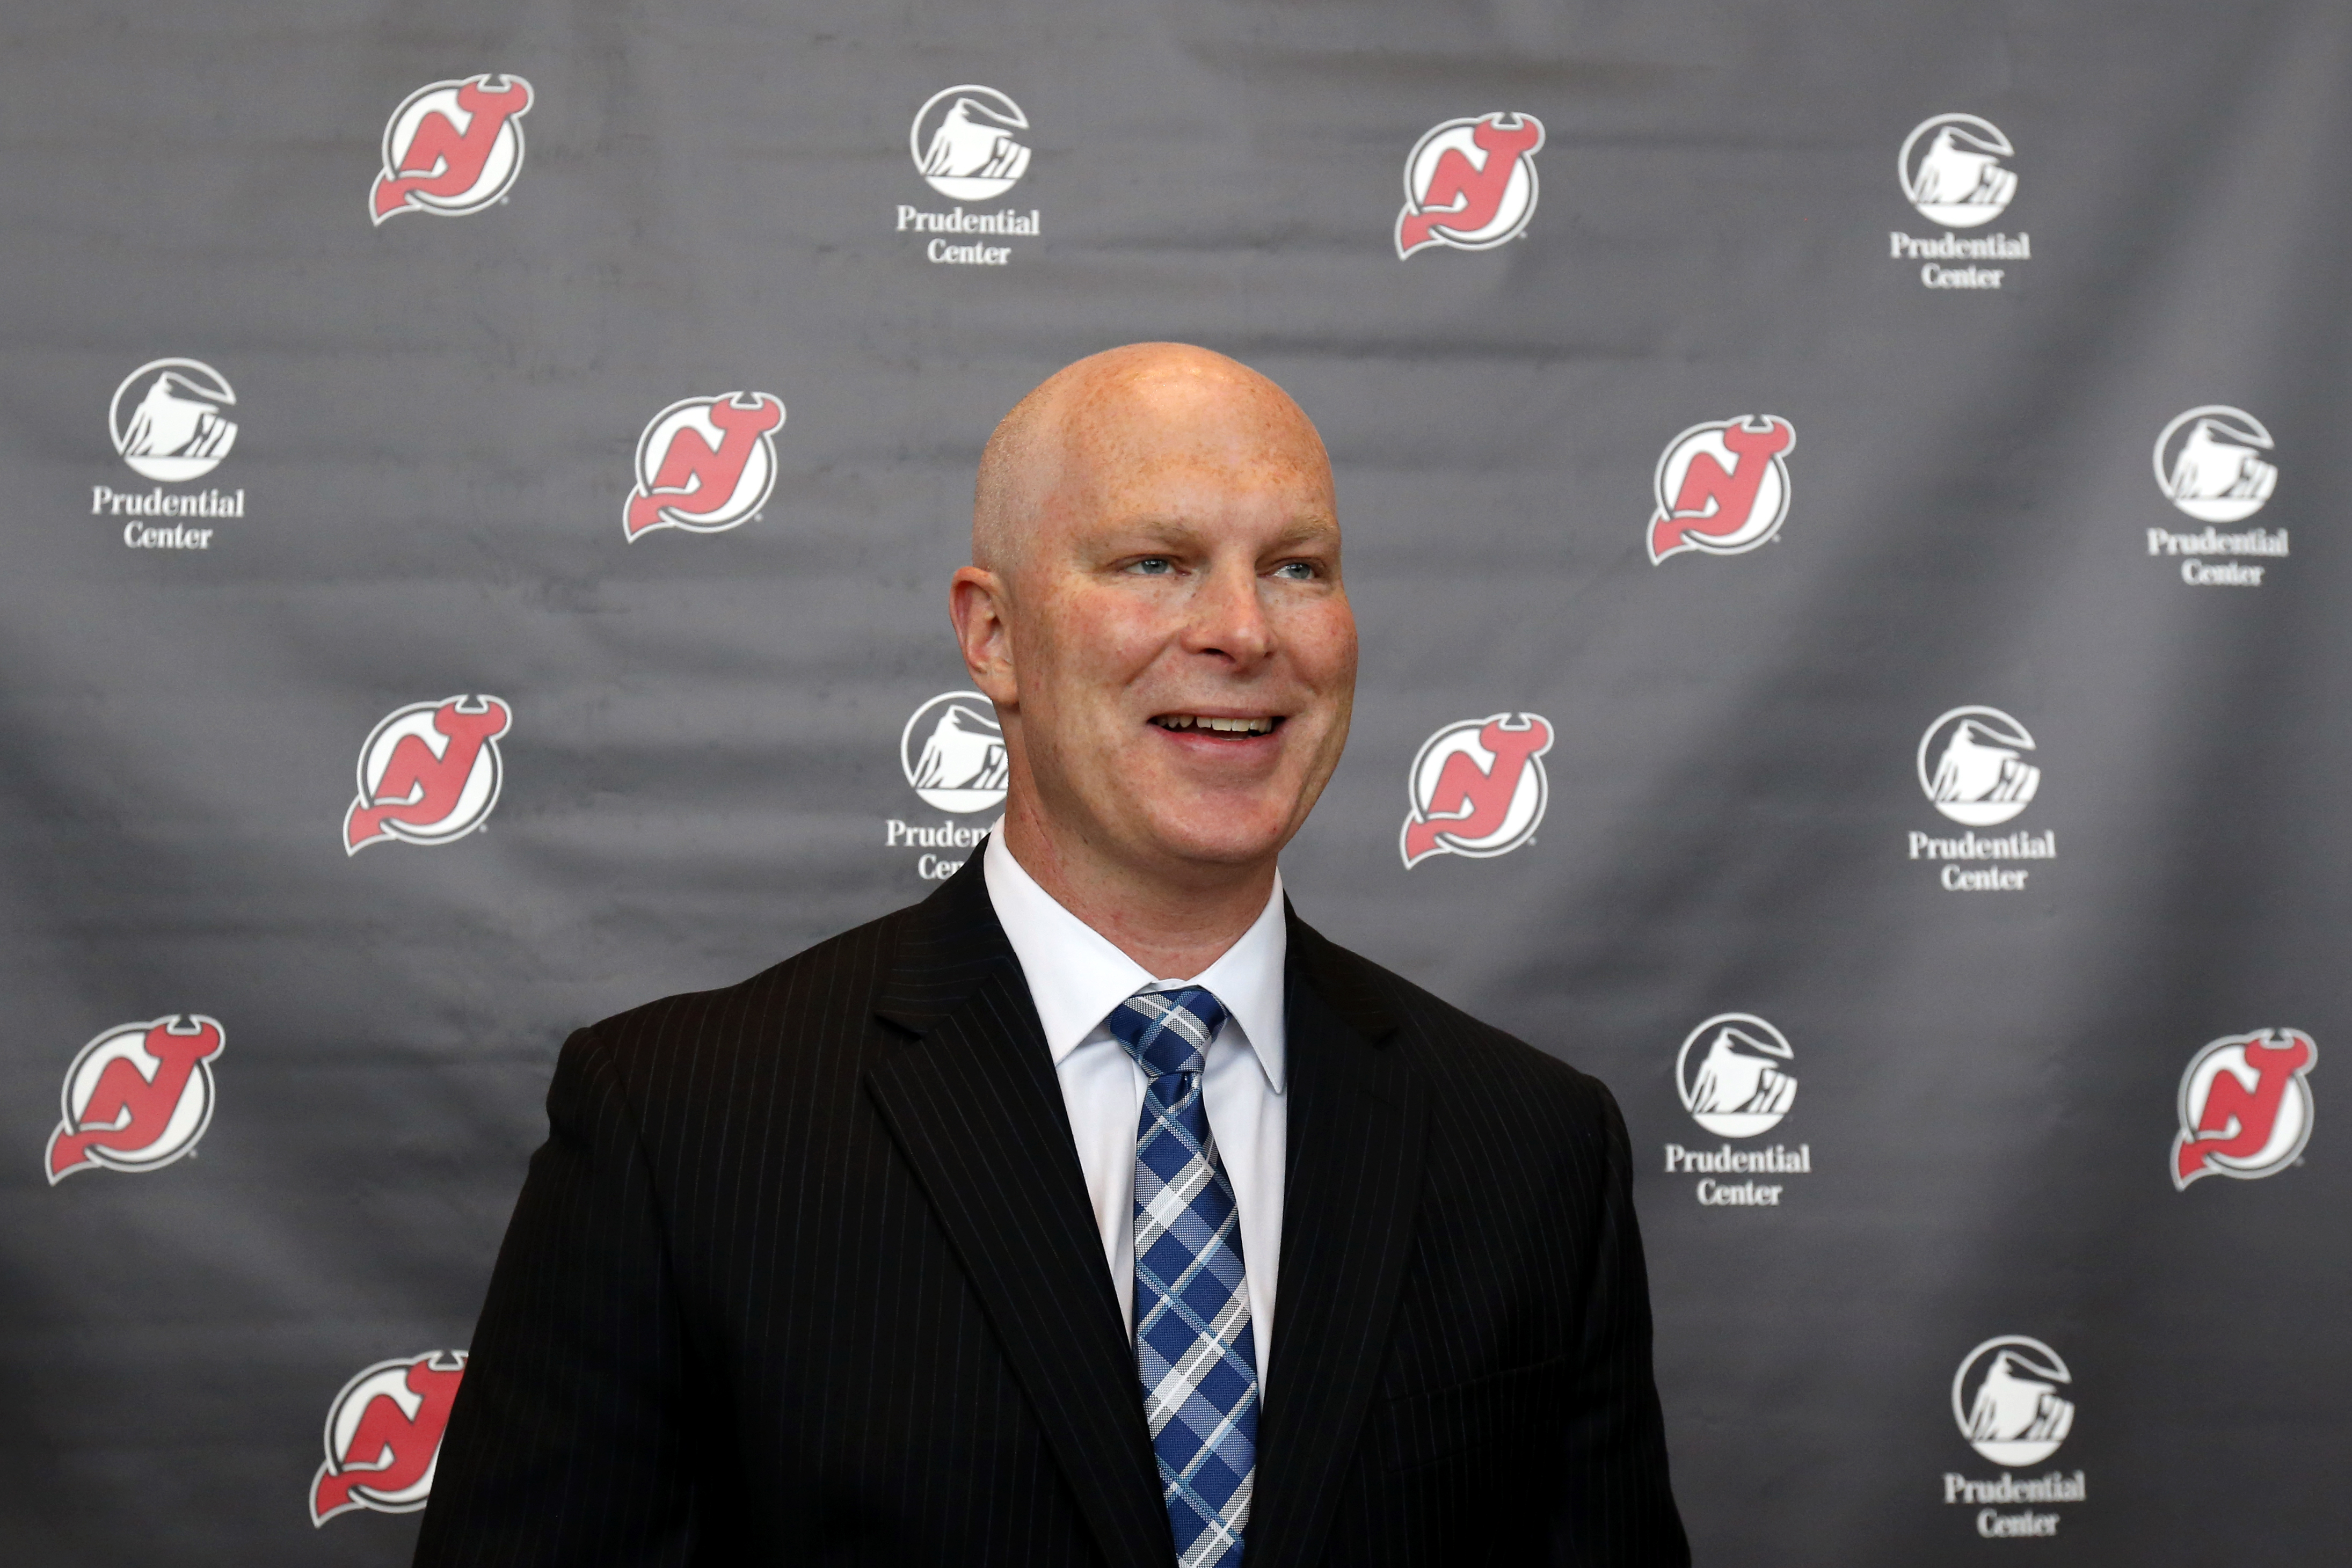 John Hynes smiles after being announced as the new head coach of the New Jersey Devils during an NHL hockey news conference, Tuesday, June 2, 2015, in Newark, N.J. (AP Photo/Julio Cortez)